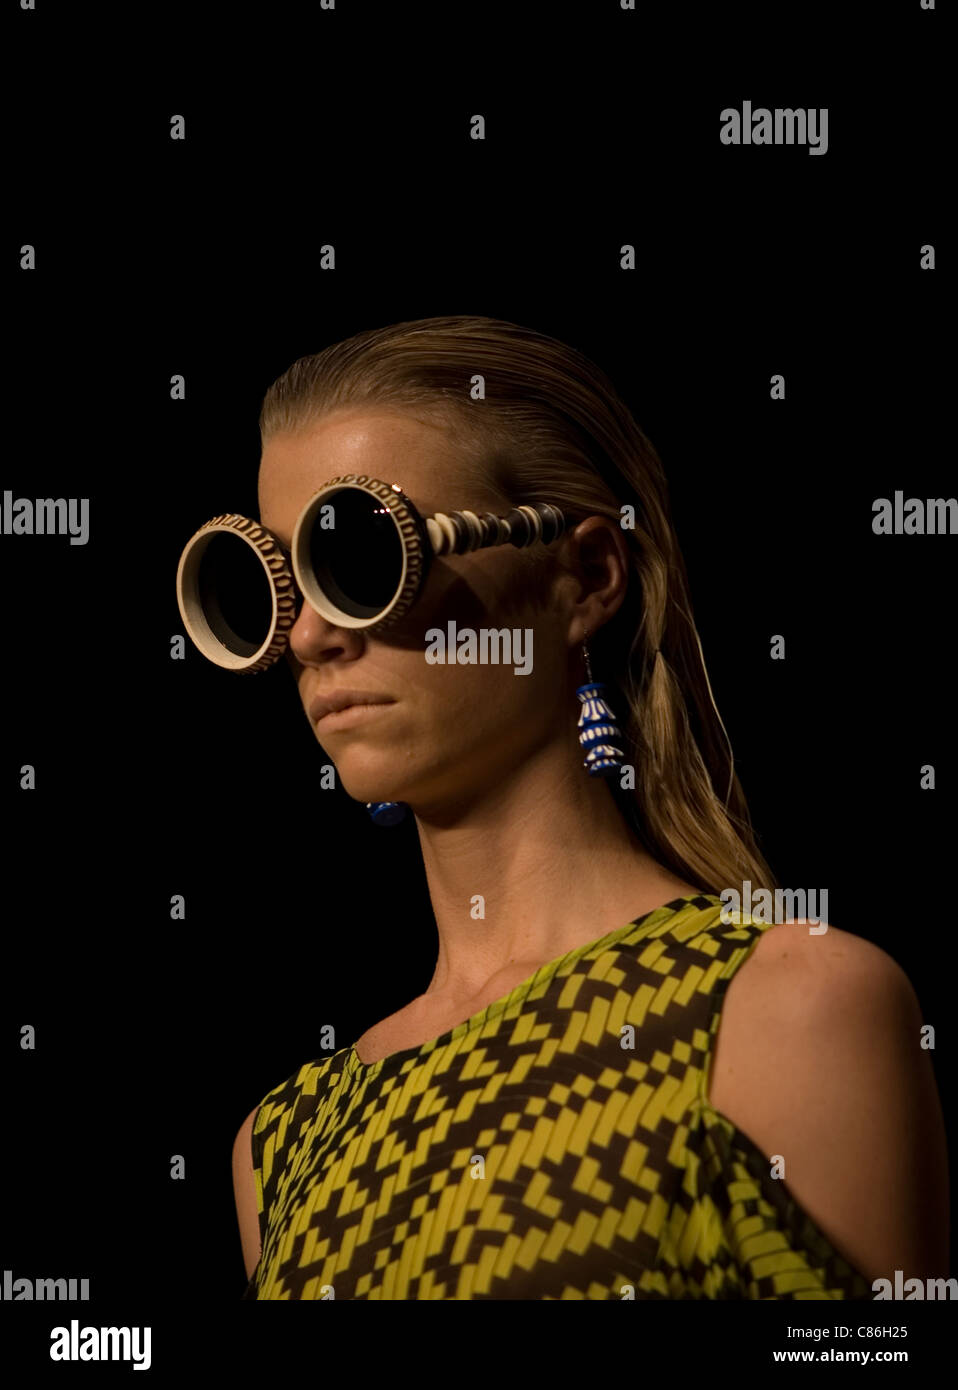 A Model Wearing Big Sunglasses By Mexican Designer Carla Fernandez Stock Photo Alamy